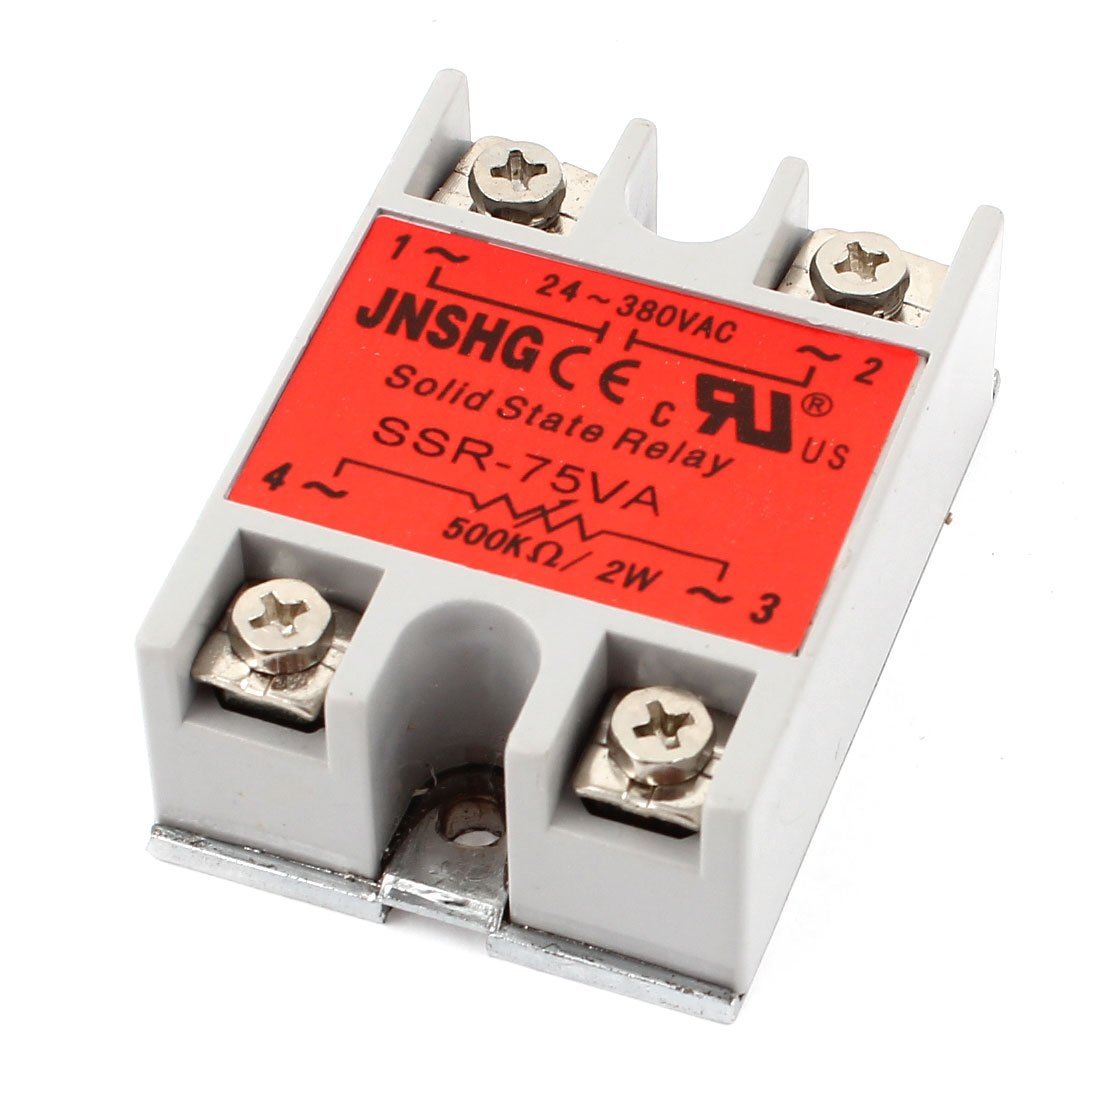 SSR-75VA AC24-380V 500K Ohm 2W Resistance Adjustable Solid State Relay патчкорд utp кат 5e rj 45 вилка rj 45 вилка 5м belsis bl1097